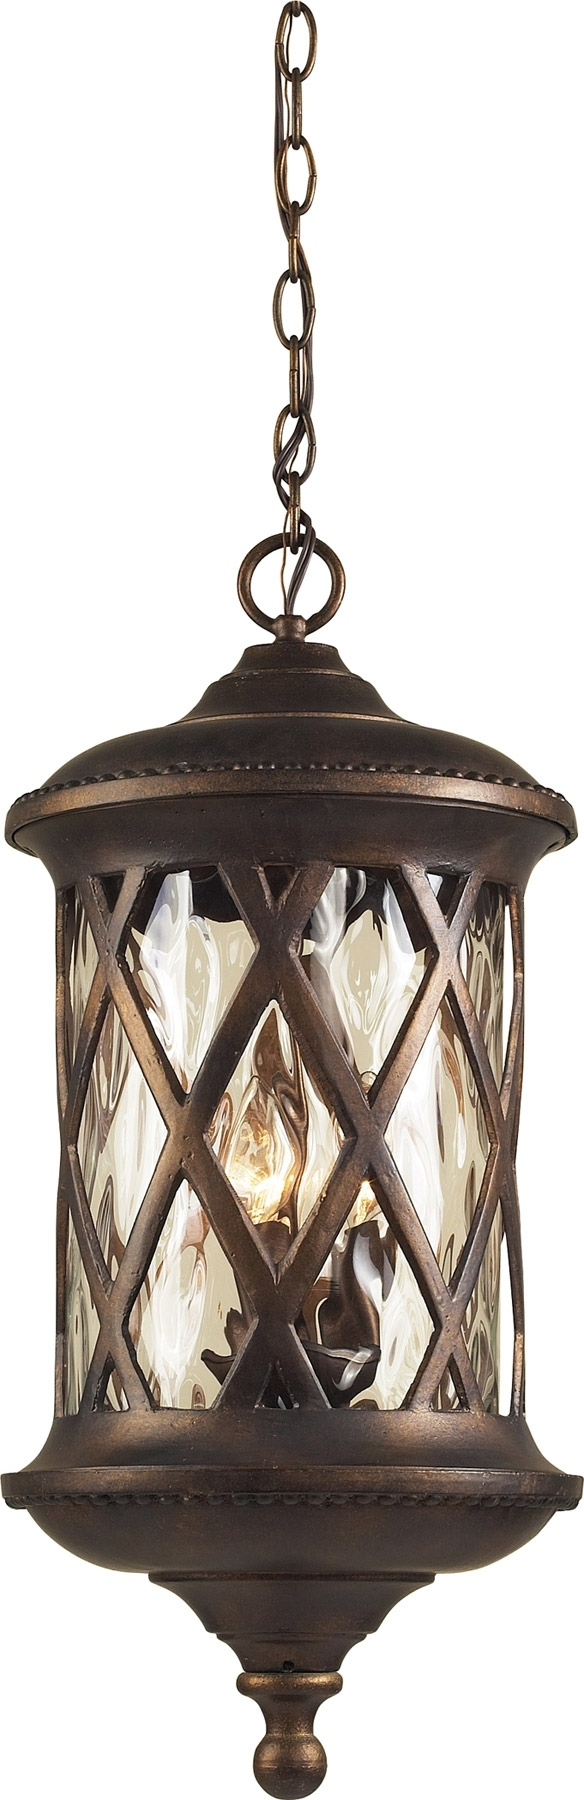 Inspiration about Lighting 42033/3 Barrington Gate Exterior Hanging Pendant Intended For Traditional Outdoor Hanging Lights (#15 of 15)